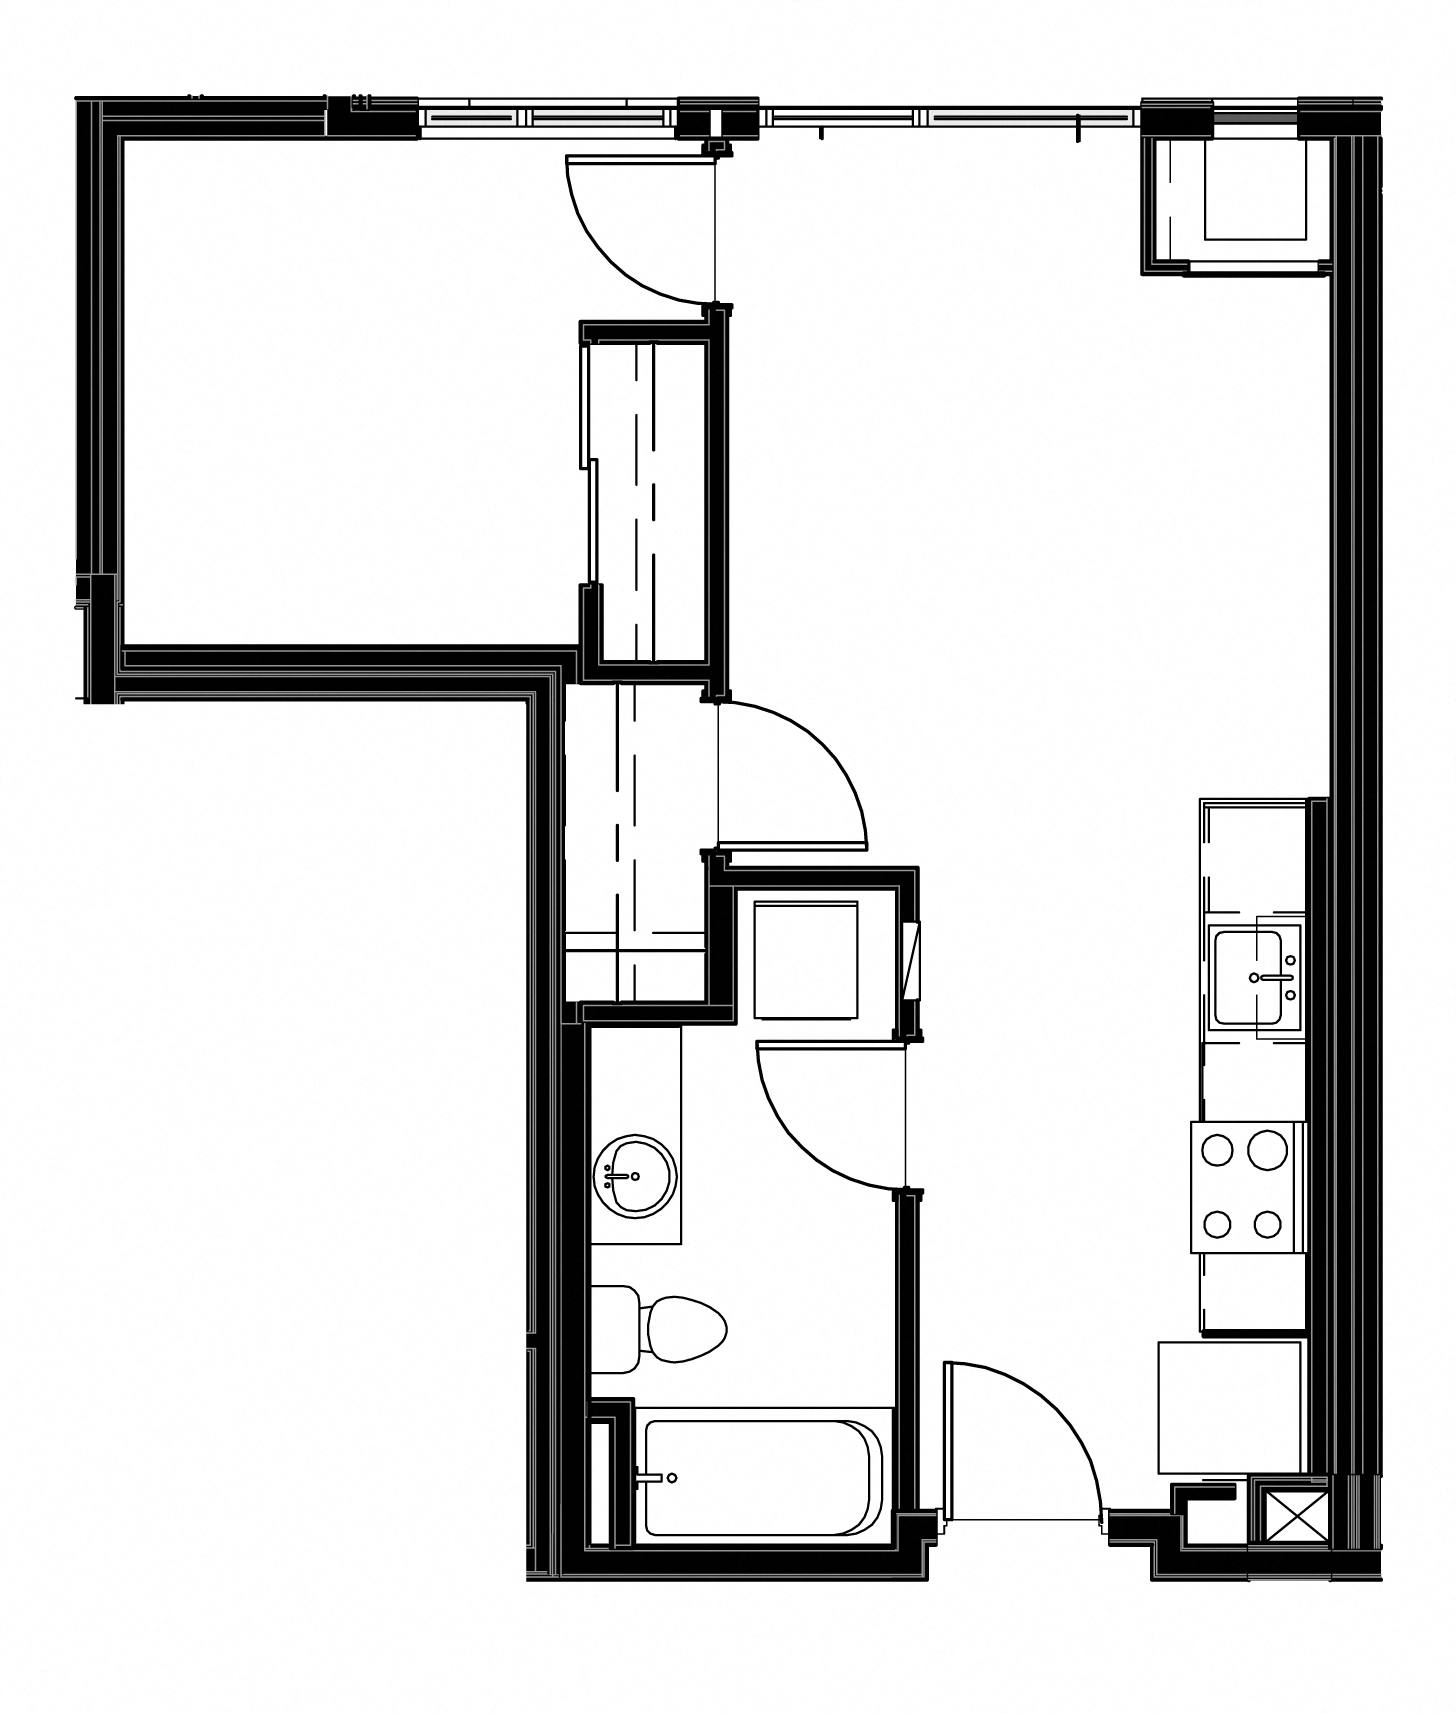 1 bedrooms Floorplan at Astro Apartments